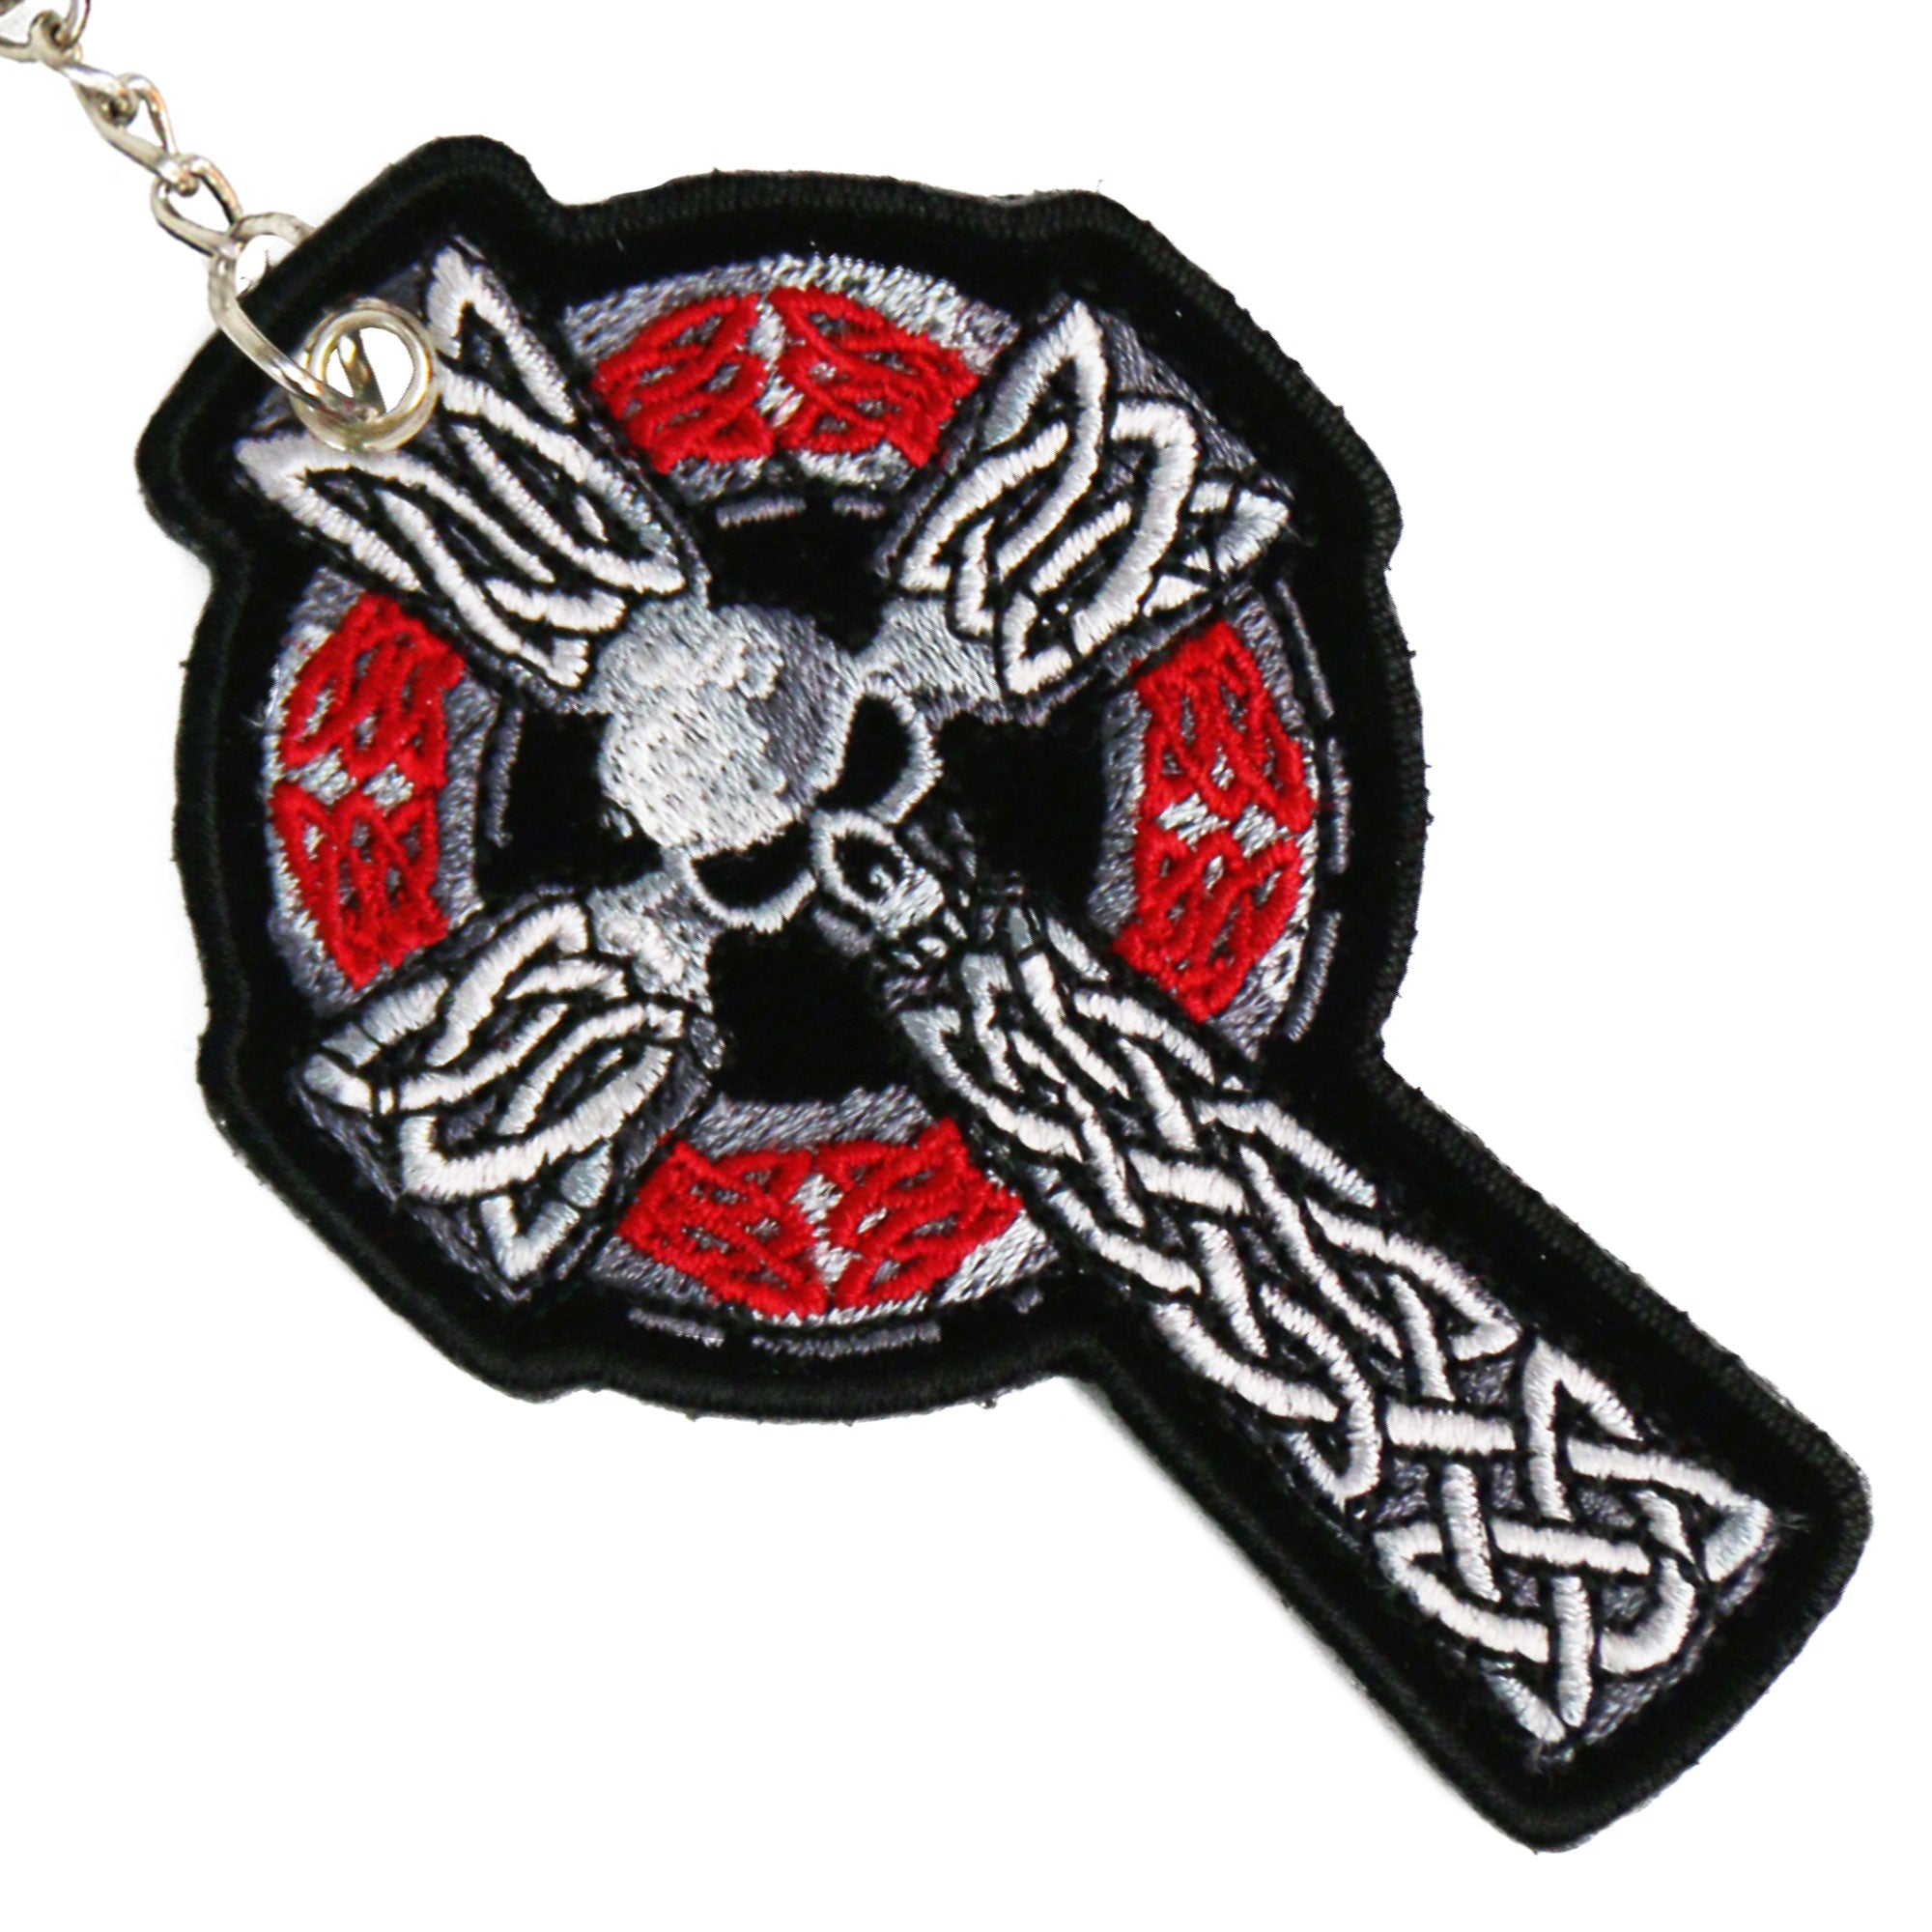 Hot Leathers Celtic Cross Embroidered Key Chain